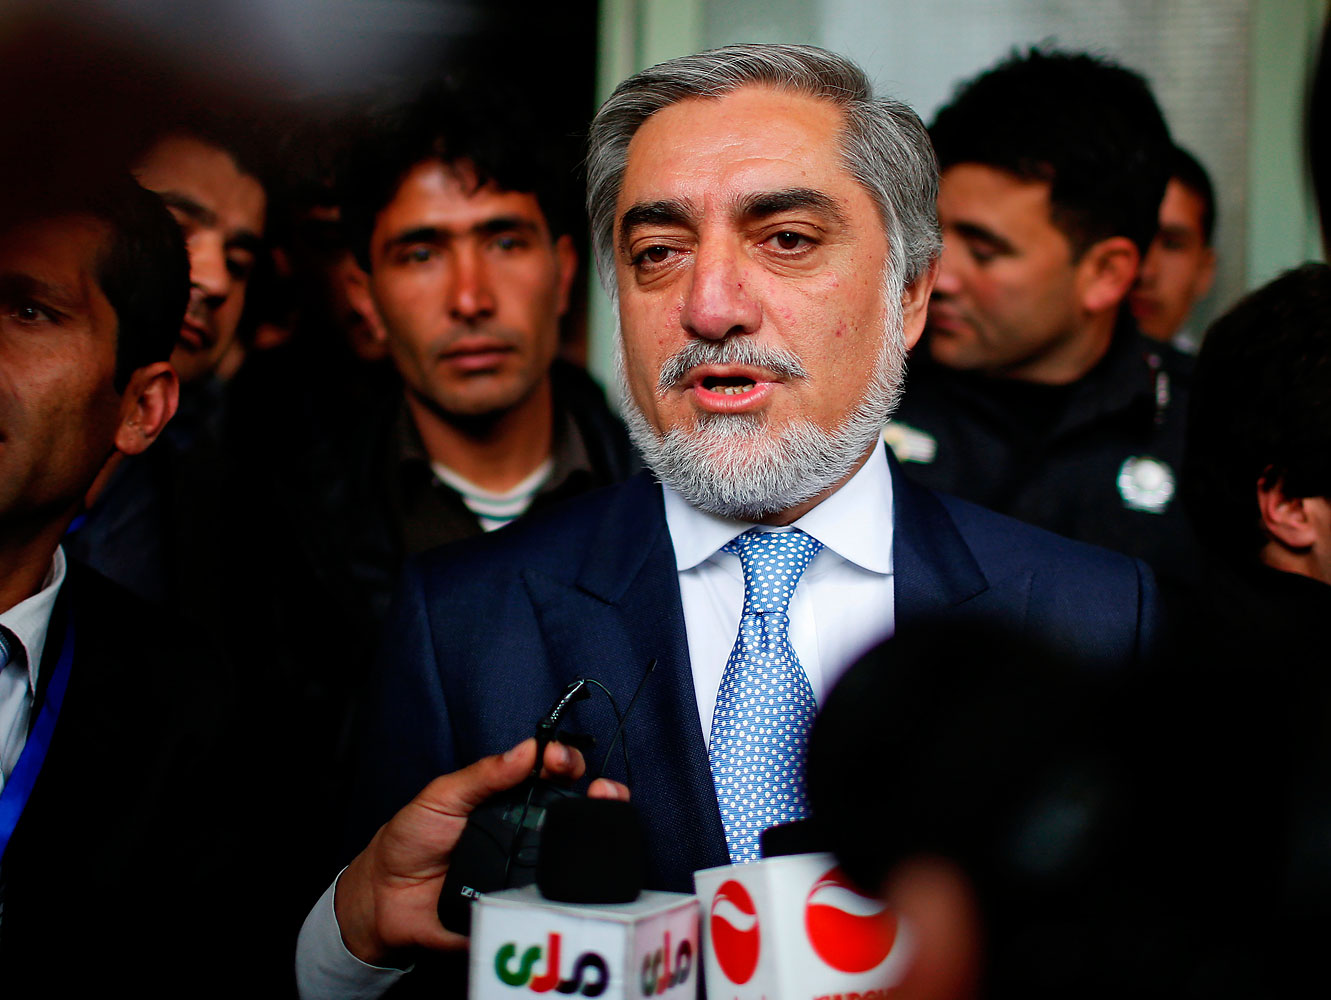 Afghan presidential candidate Abdullah Abdullah speaks to the media after voting at a polling station in Kabul on April 5, 2014